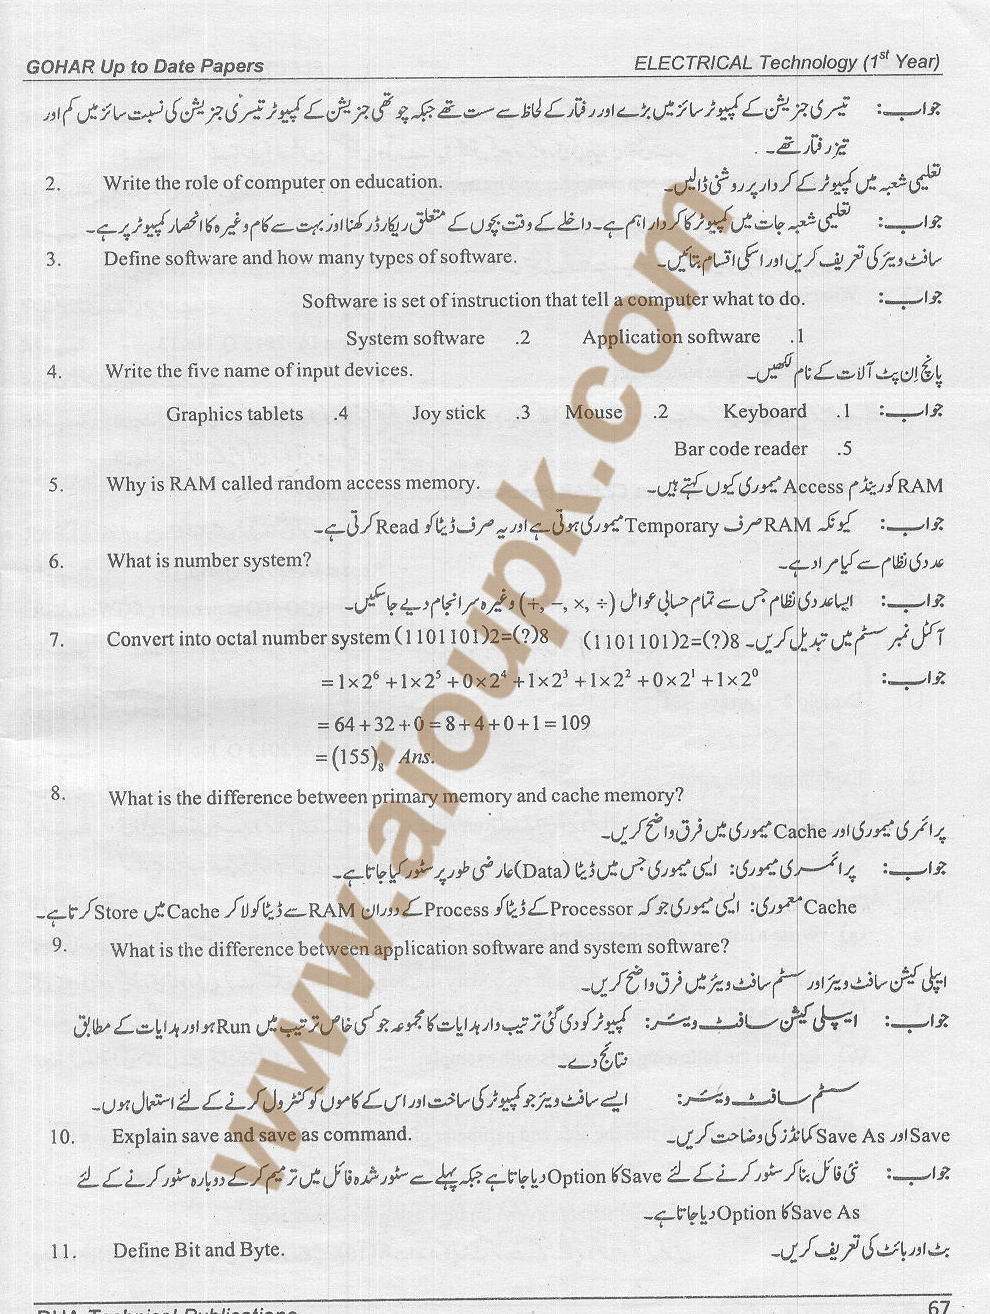 computer application paper solved 2012 Browse and read icse computer application question paper 2012 solved icse computer application question paper 2012 solved change your habit to hang or waste the time to only chat with your friends.